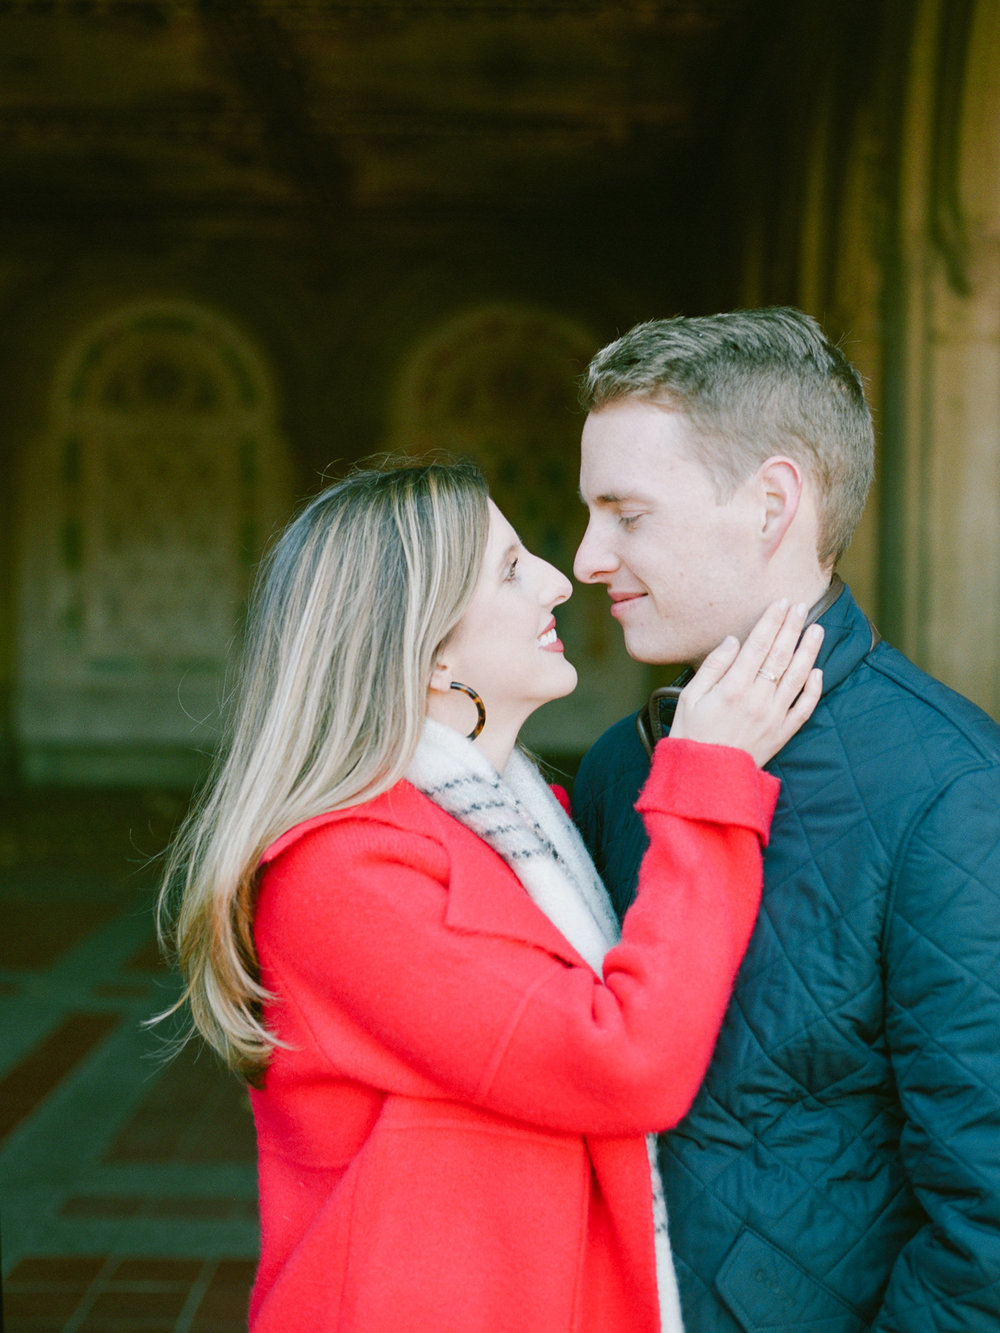 Central-park-fall-engagement-session-by Tanya Isaeva-42.jpg